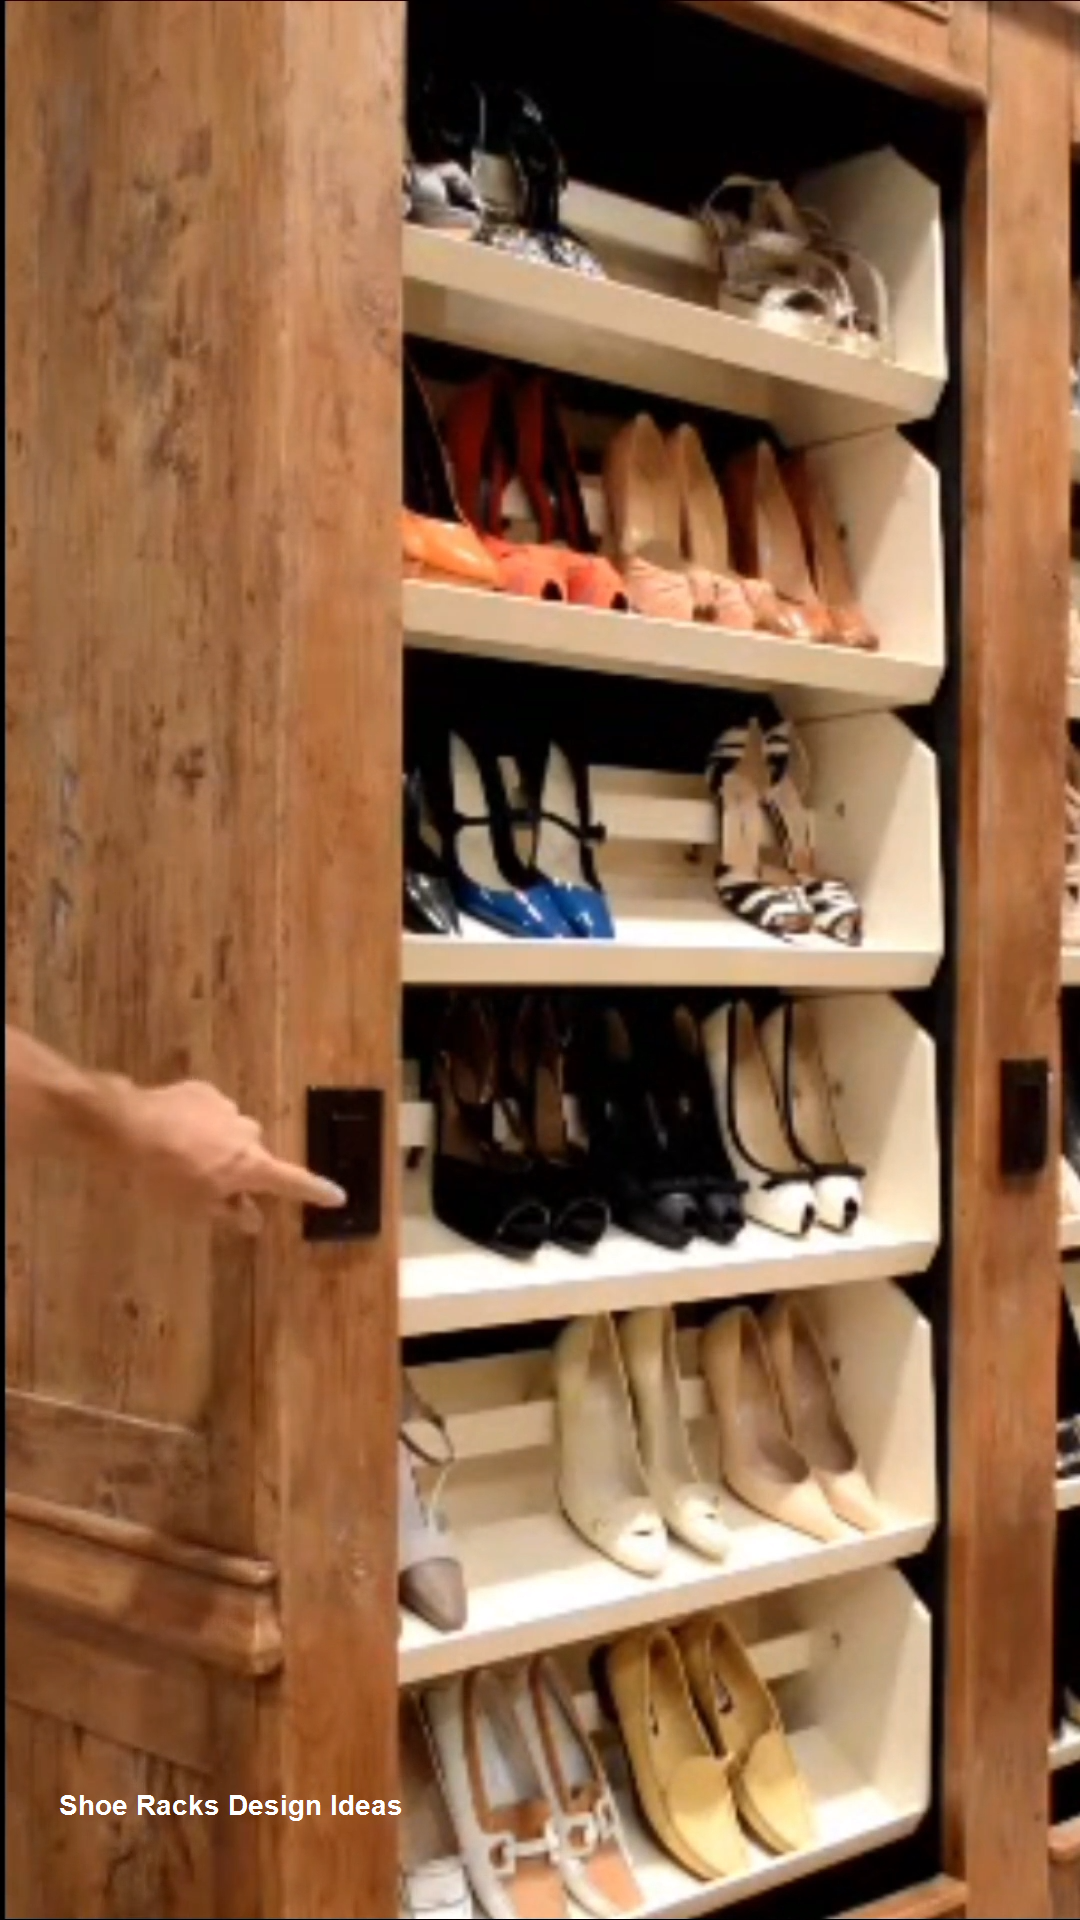 Reduce Fuss And Stay Organized With Diy Shoe Rack Daily Do It Yourself Rotating Shoe Rack Shoe Rack Diy Shoe Rack